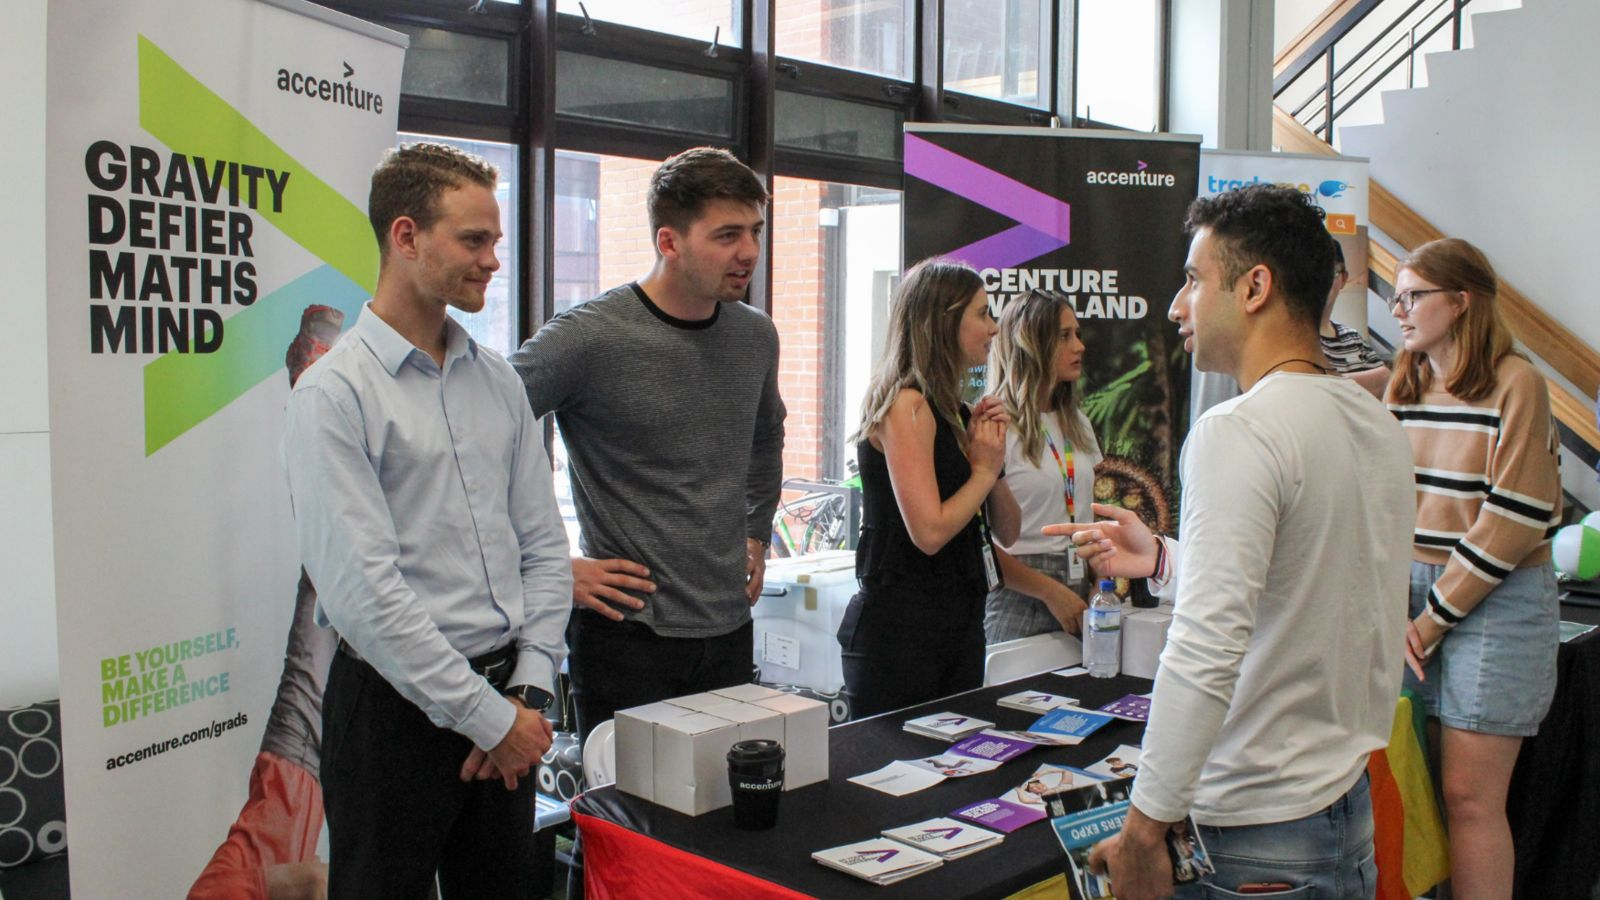 A male student engages with employers at an expo booth.